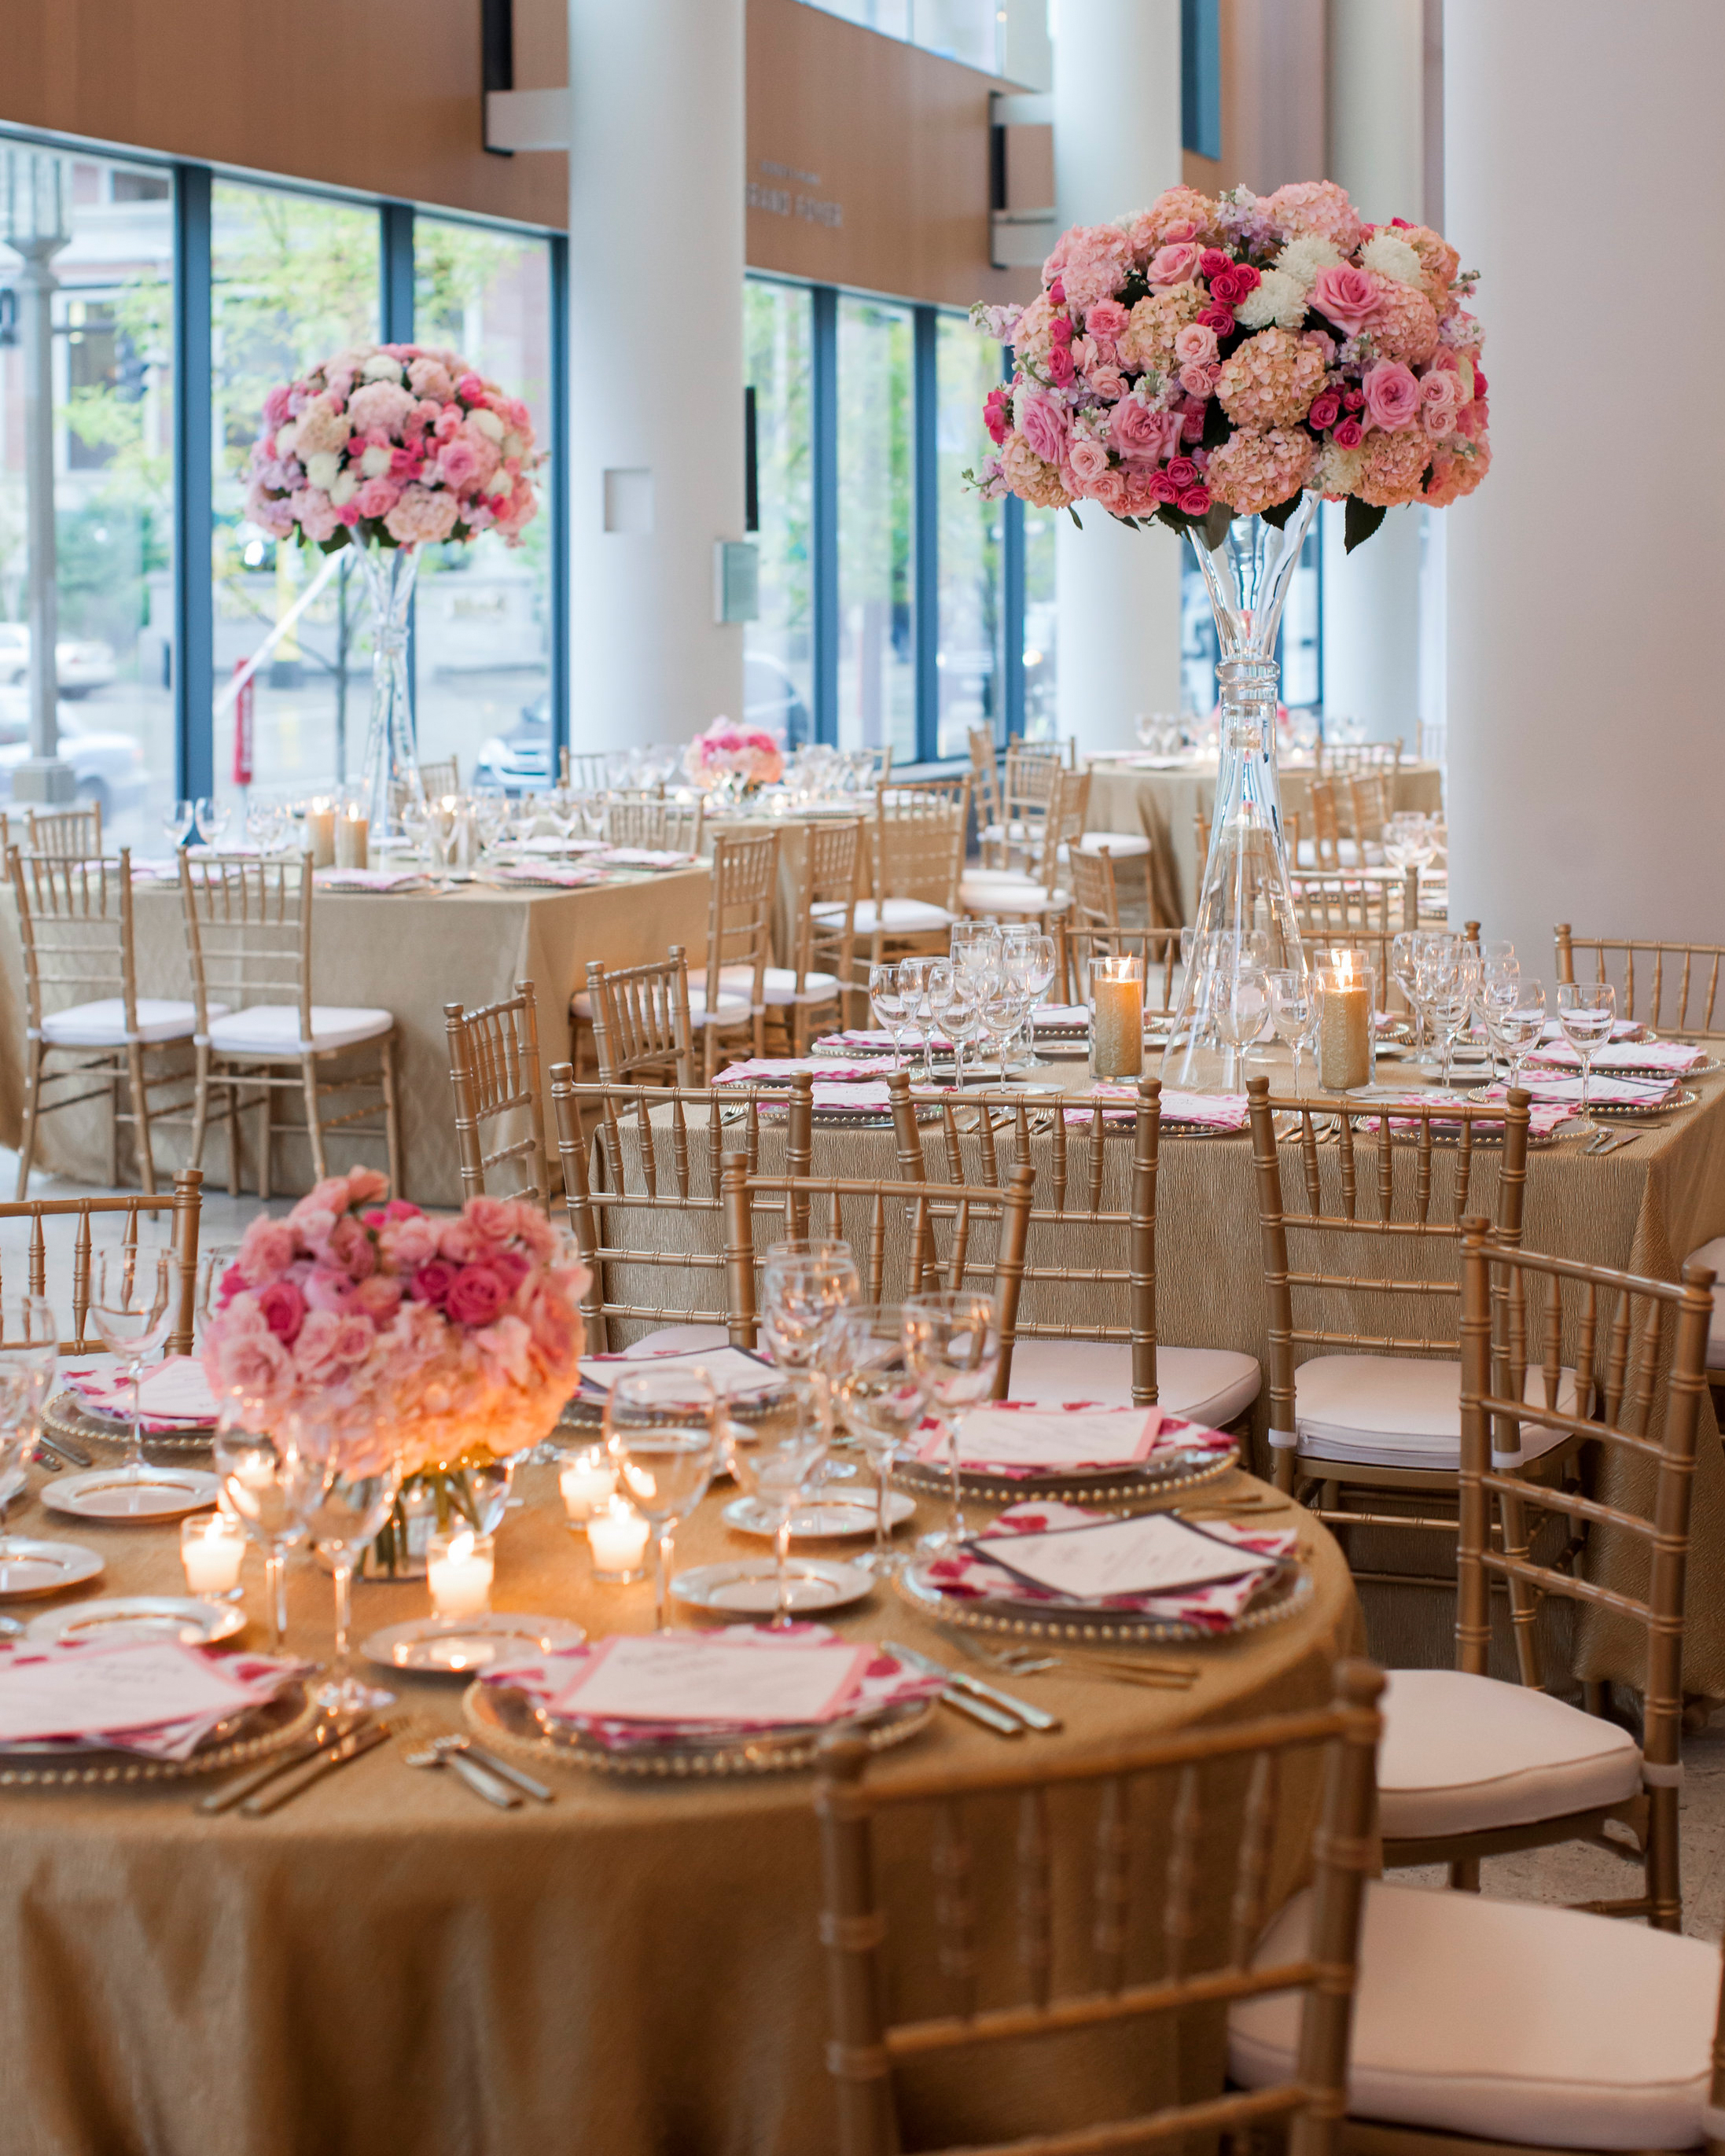 The Reception Décor